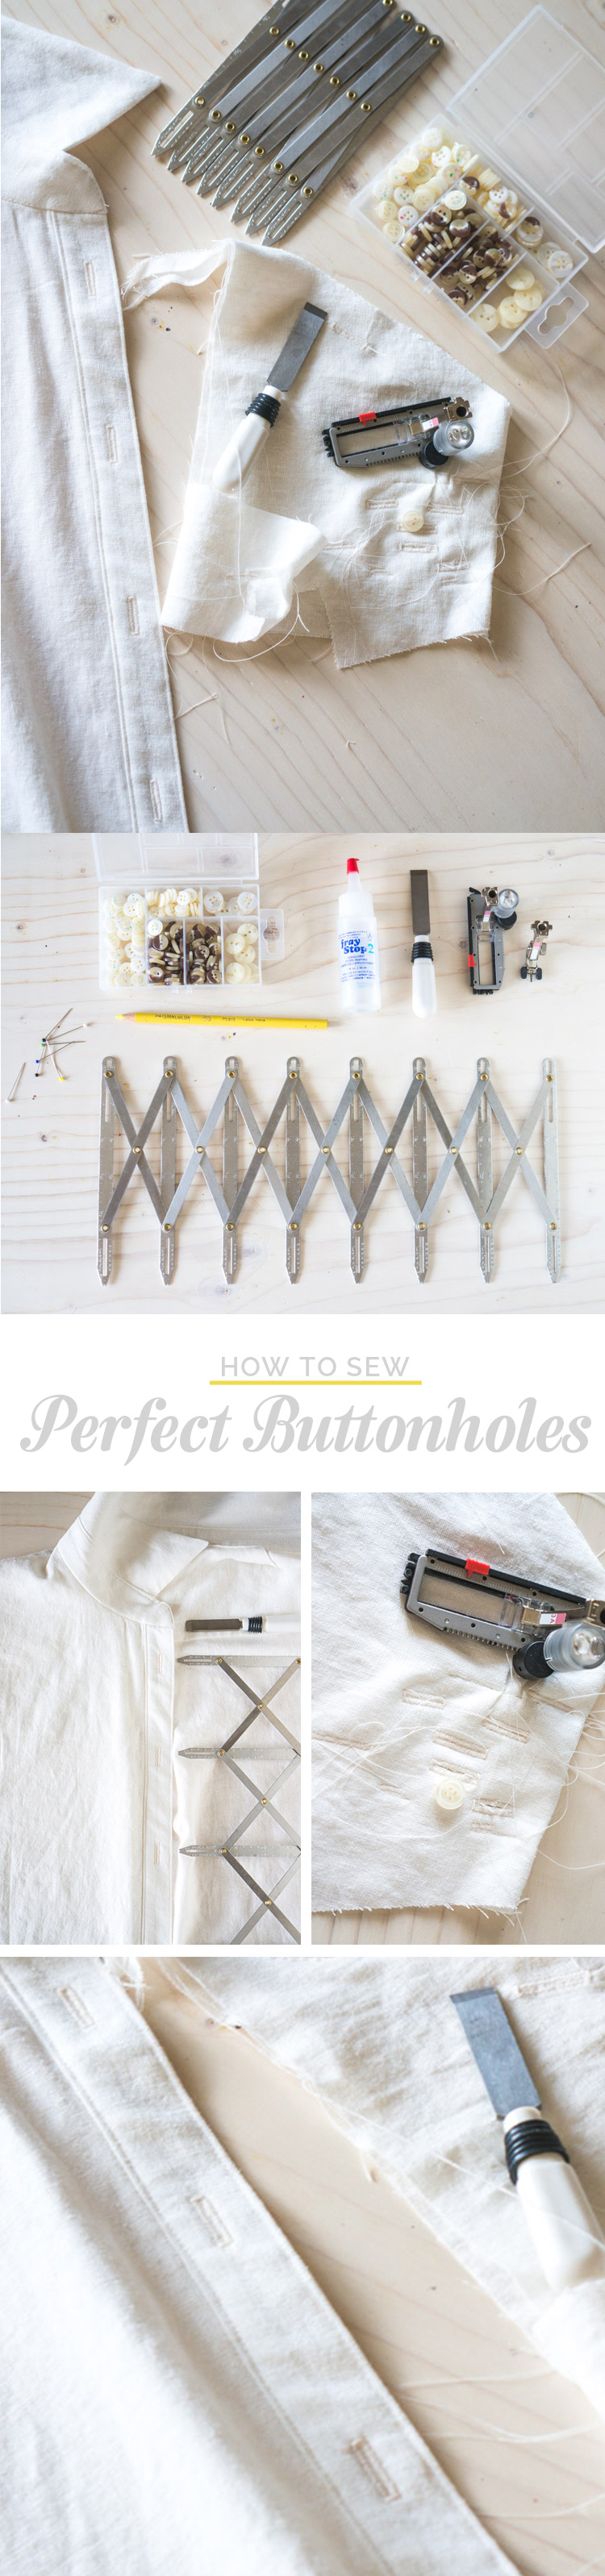 How to Sew Perfect Buttonholes // Closet Case Files